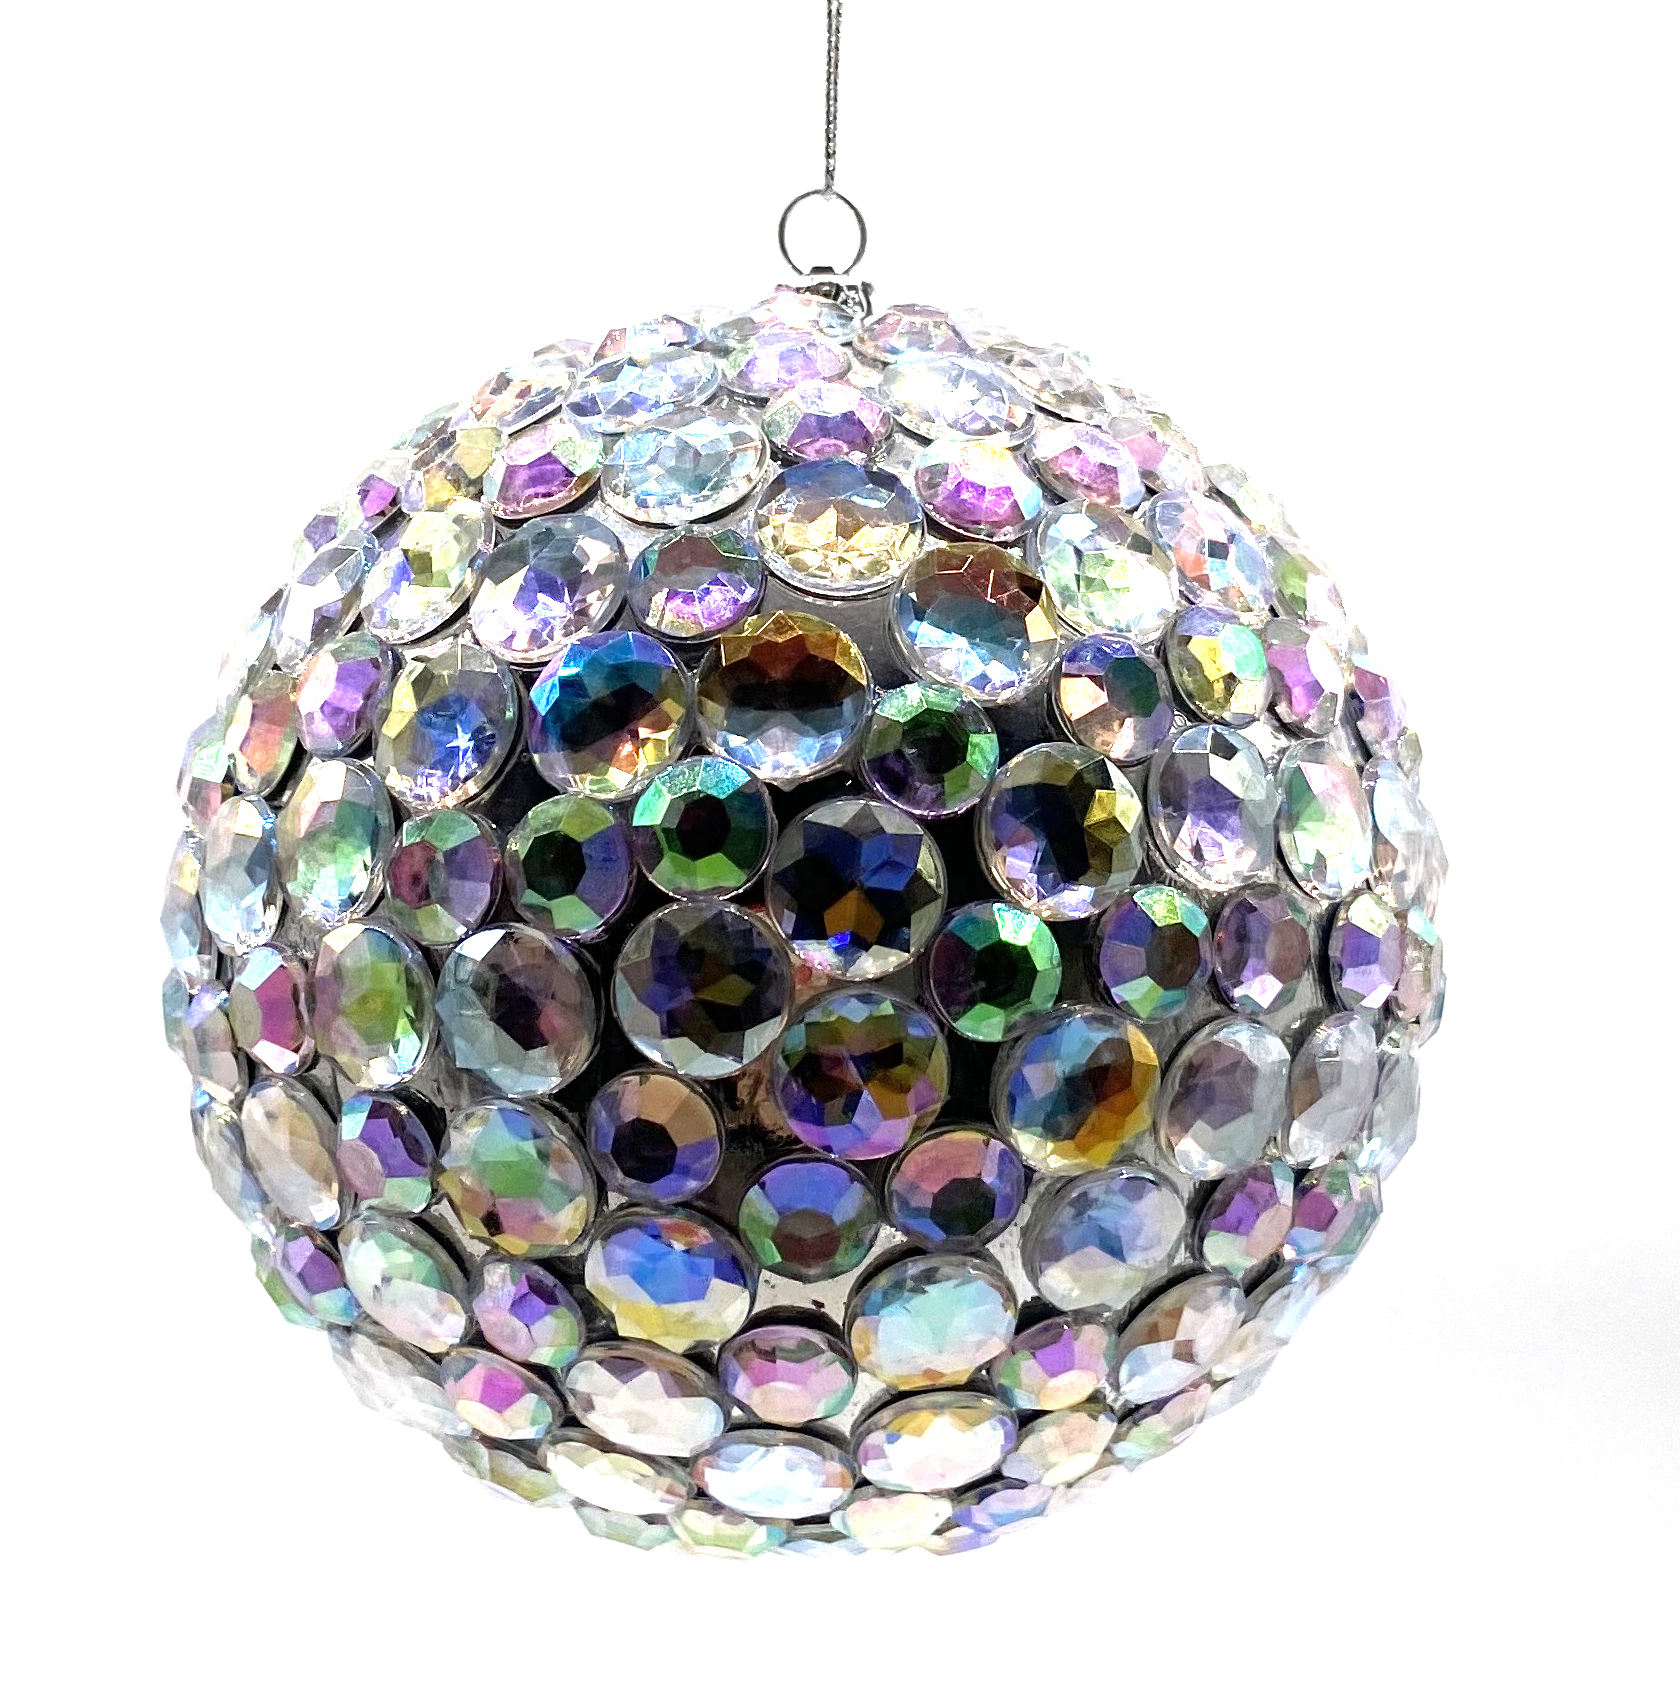 new arrivals 2020 Promotional Gifts glitter xmas baubles ball decoration christmas felt ornament